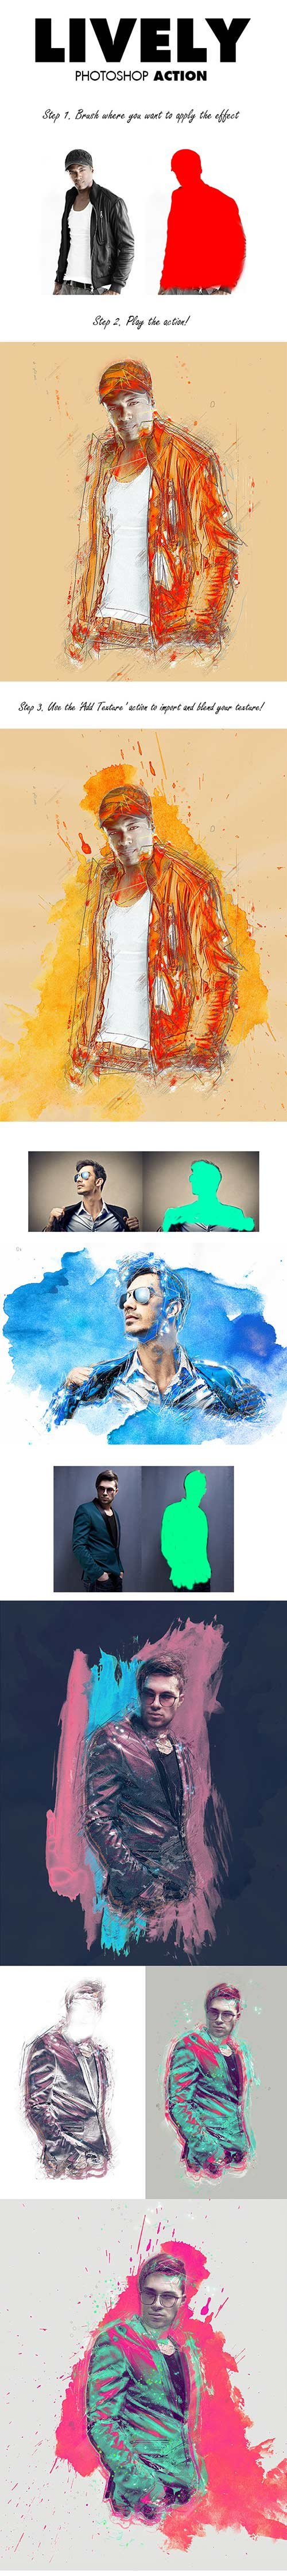 GraphicRiver - Lively Photoshop Action 8871107